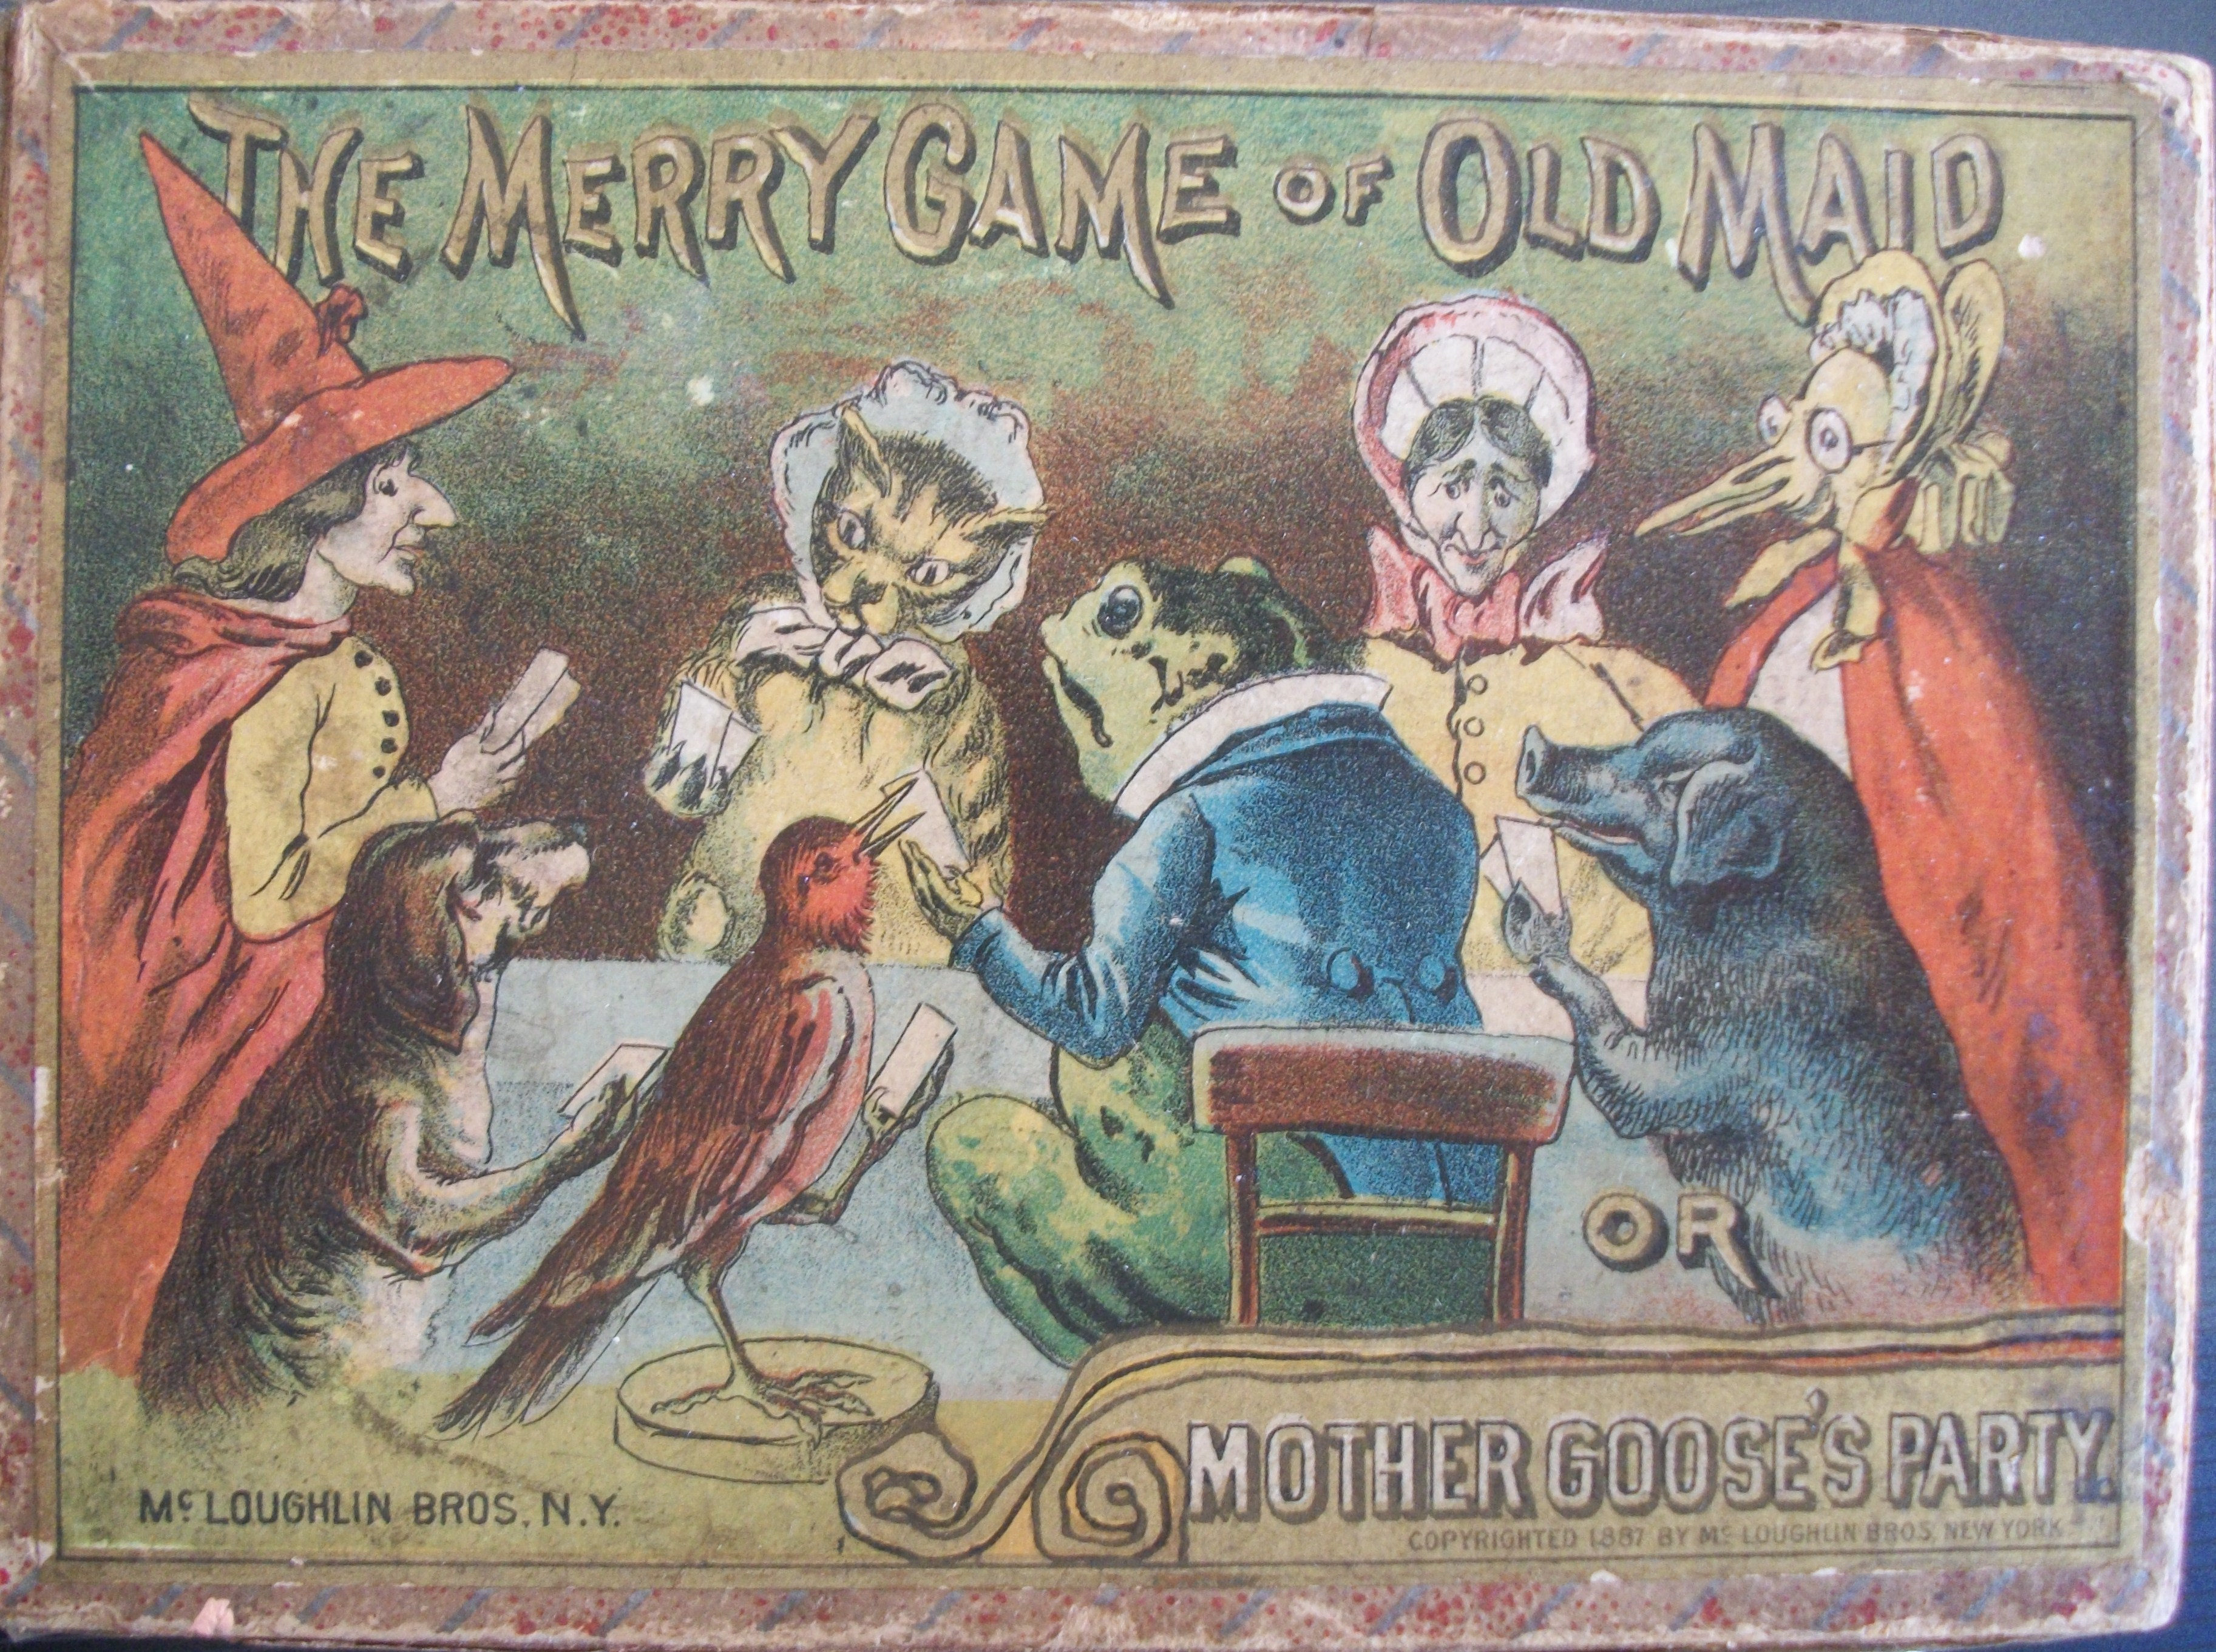 antique Mcloughlin bros 1887 old maid game